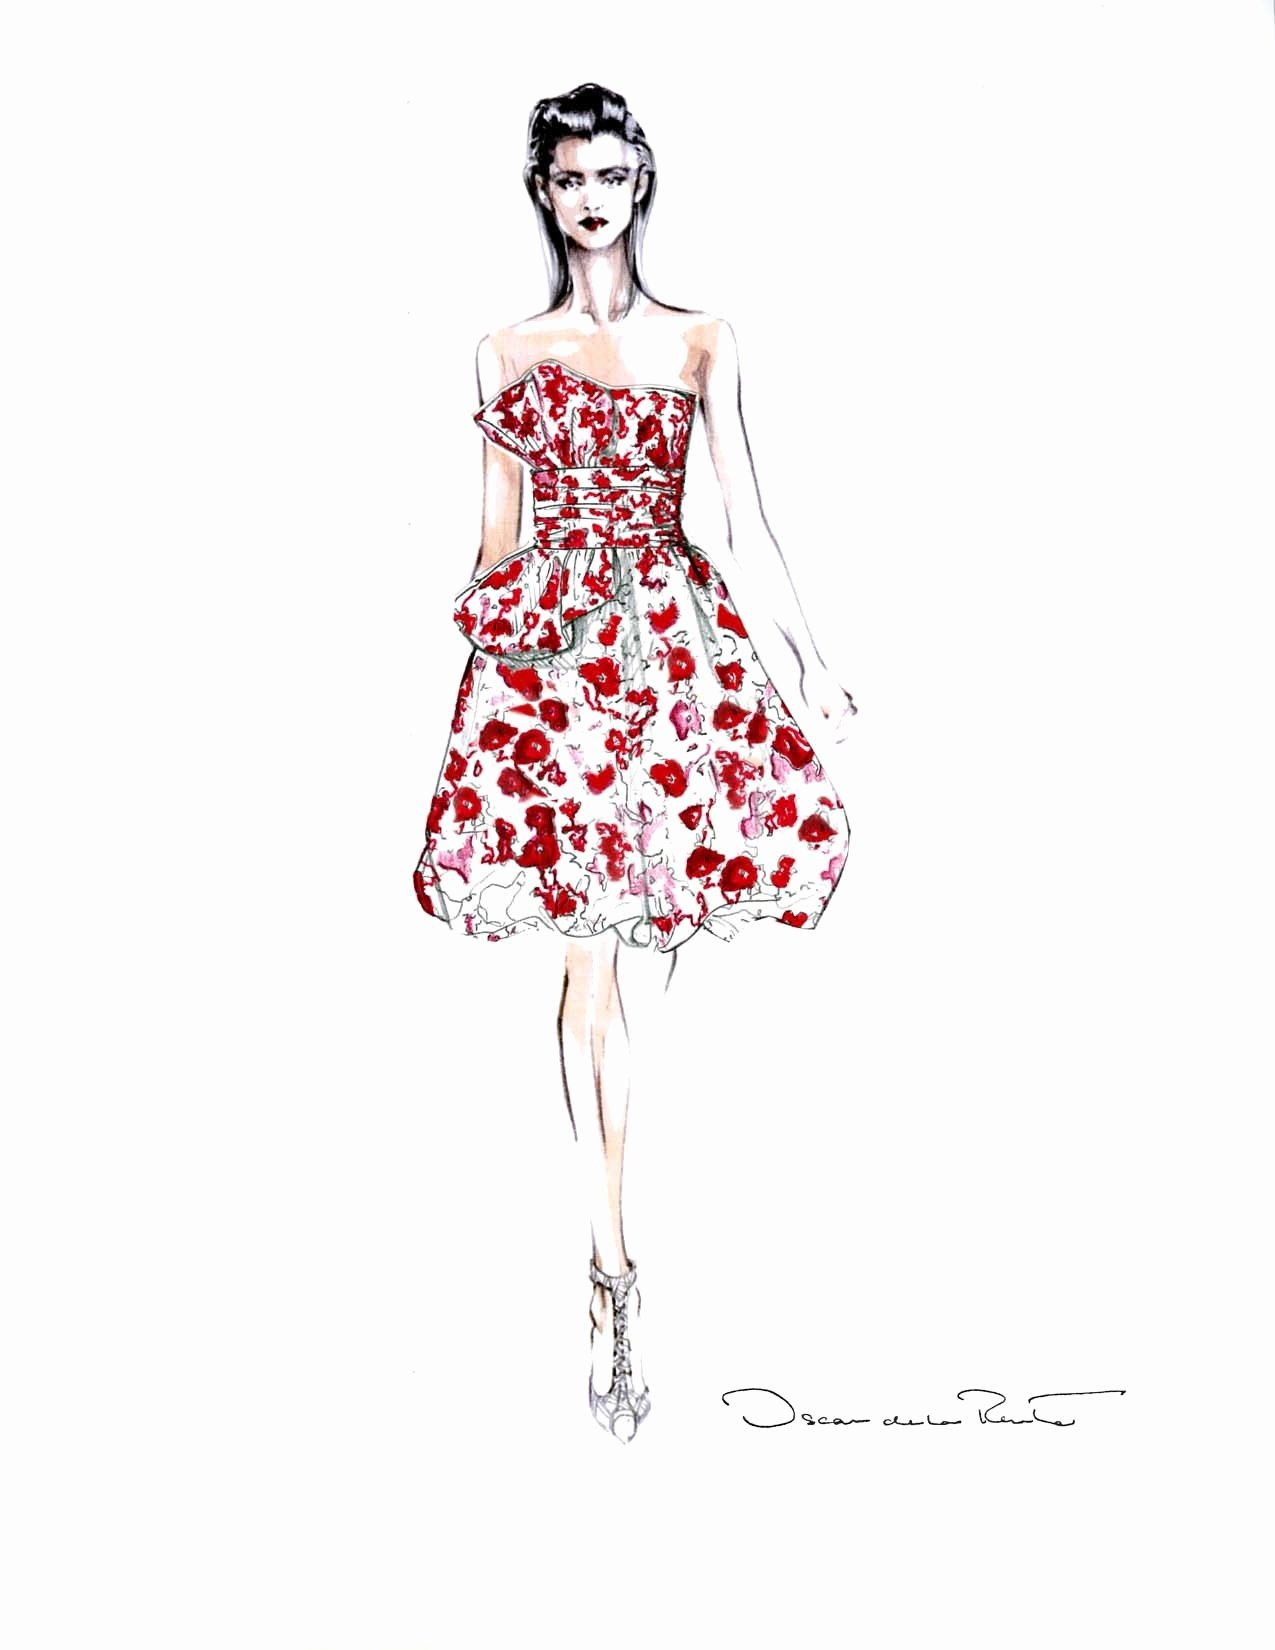 Dress Sketches for Fashion Designing Beautiful Oscar De La Renta Fashion Sketches